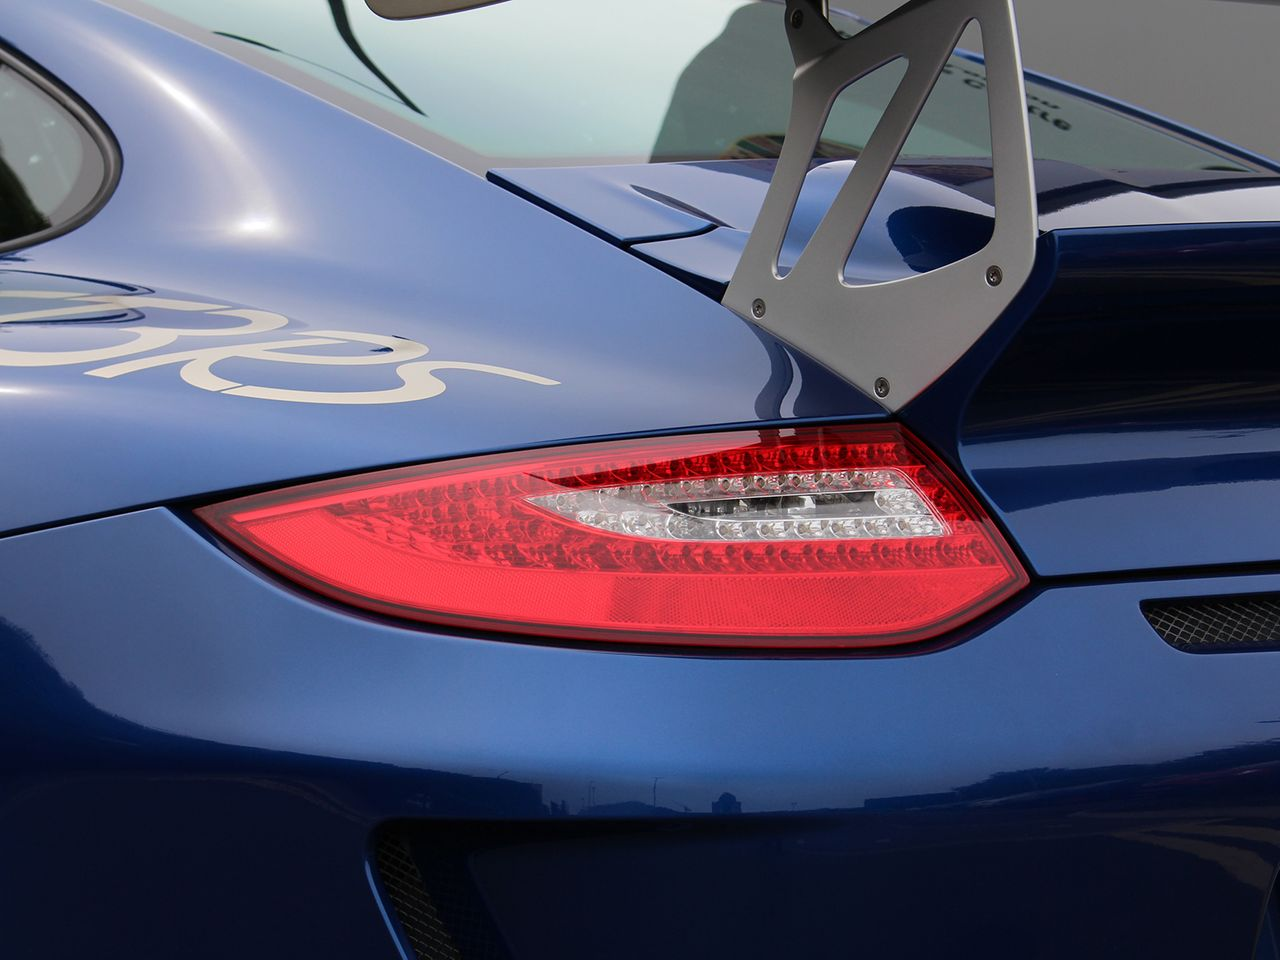 911 GT3 RS (3) image 33